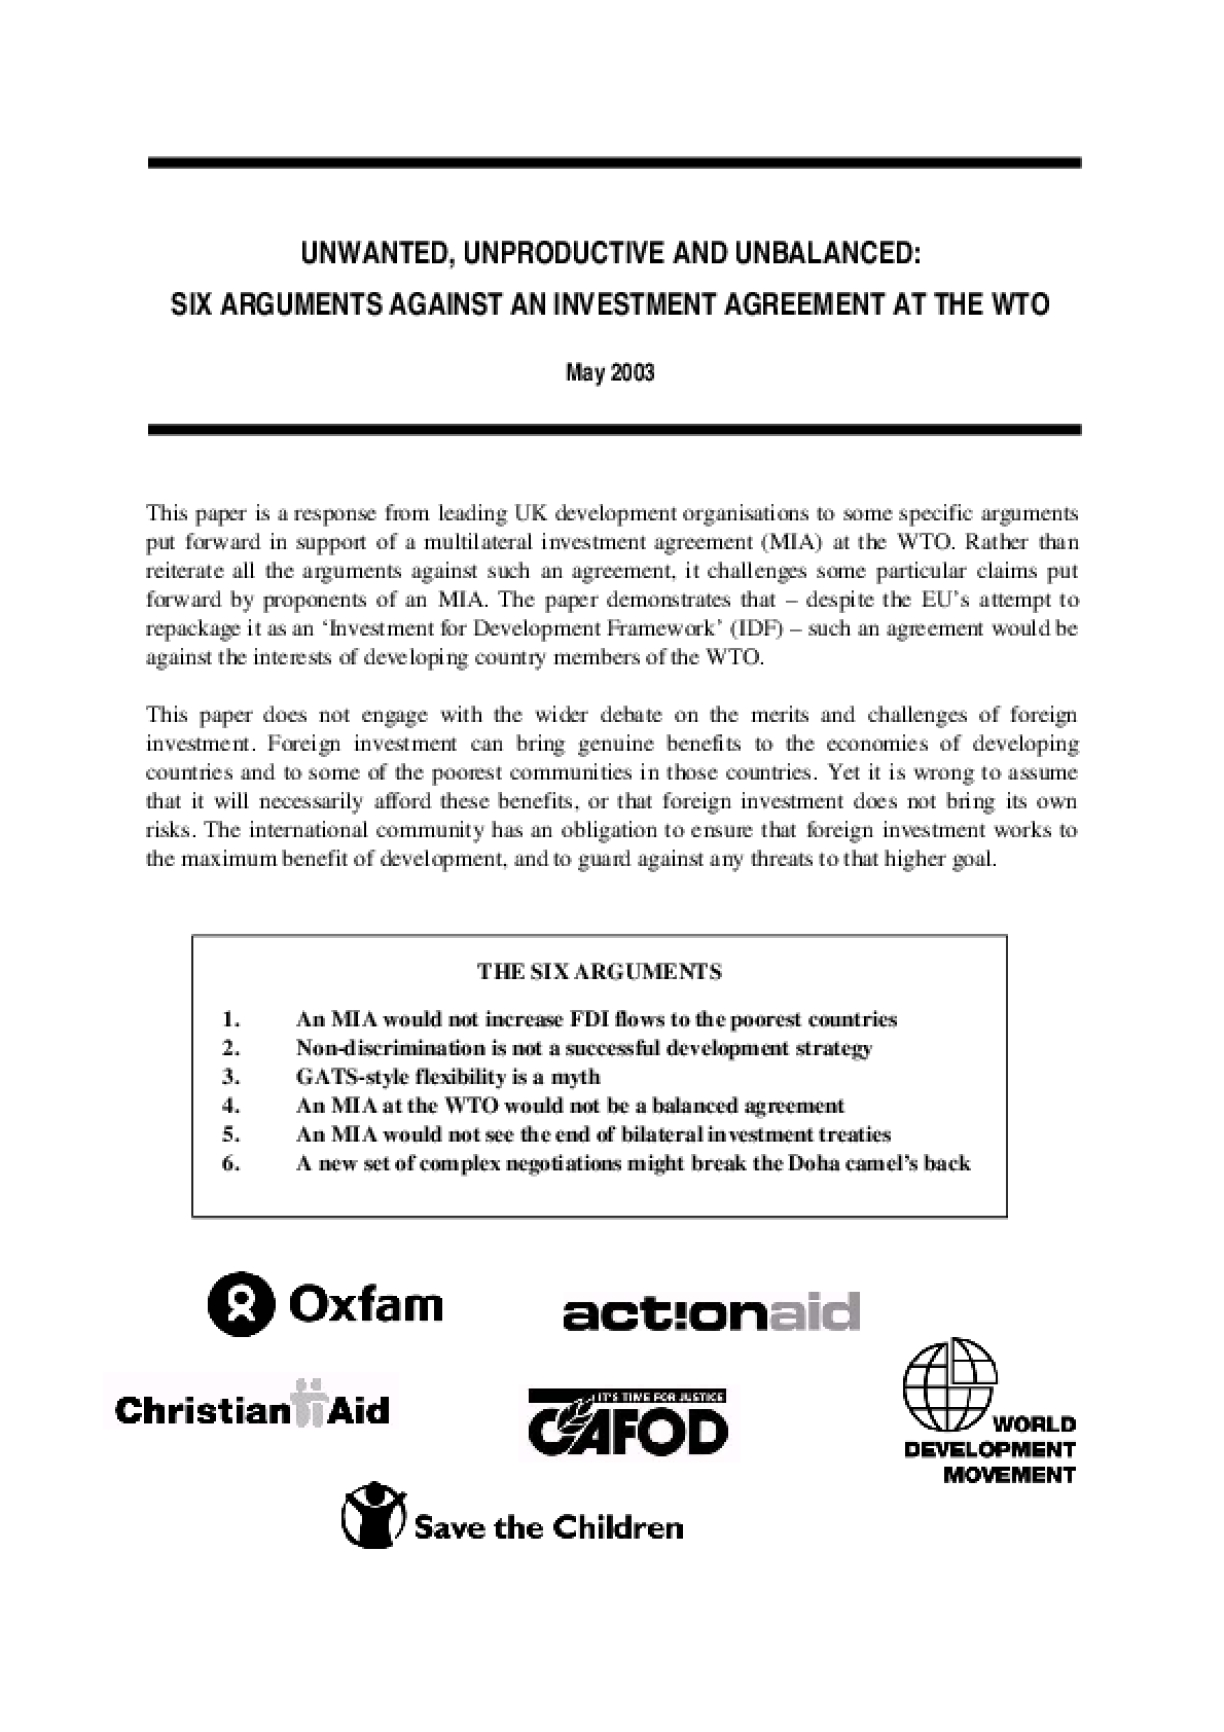 Unwanted, Unproductive and Unbalanced: Six Arguments Against an Investment Agreement at the WTO